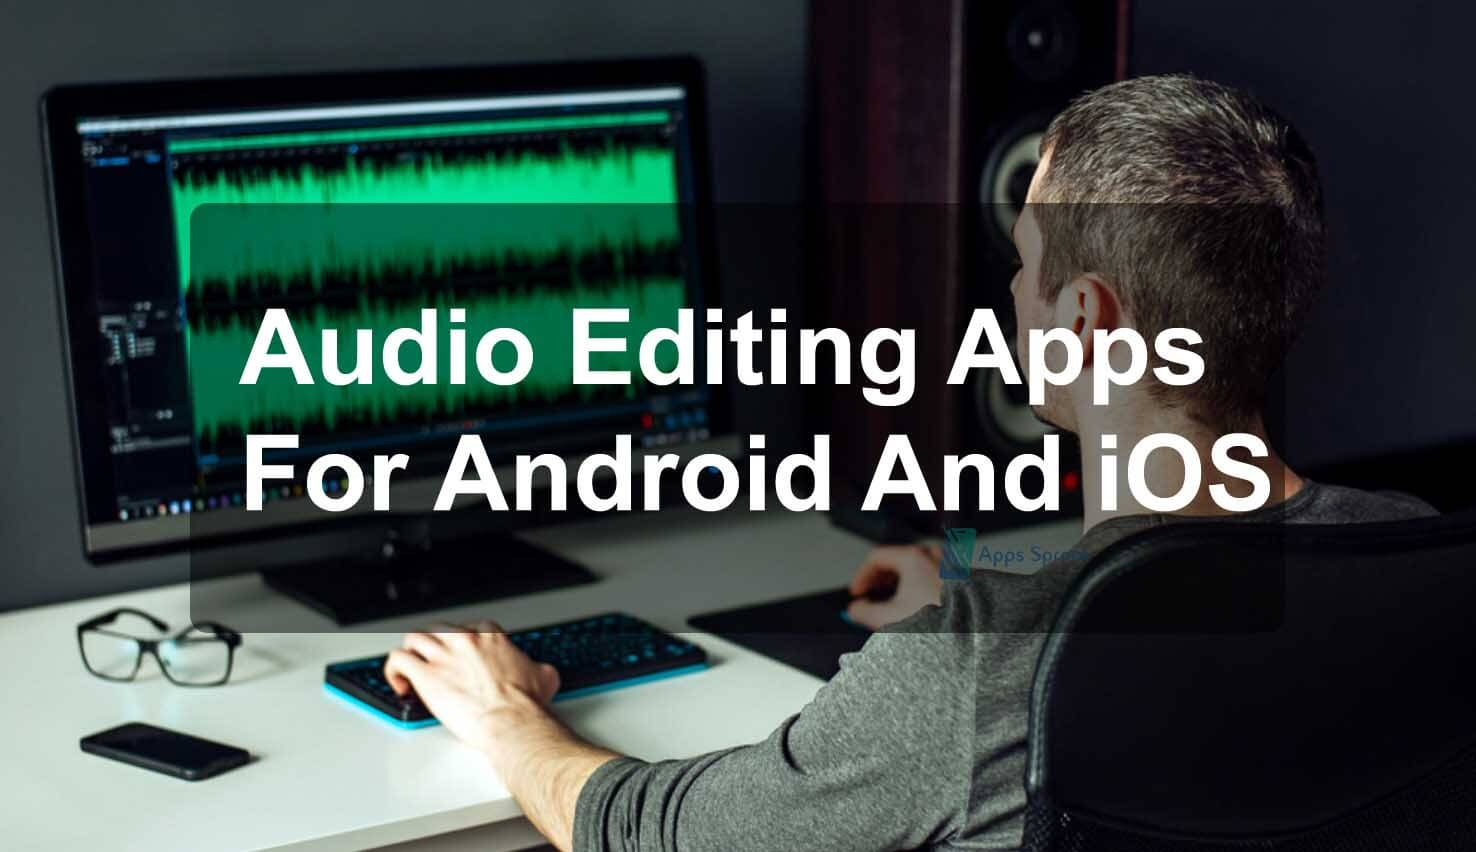 Audio Editing Apps